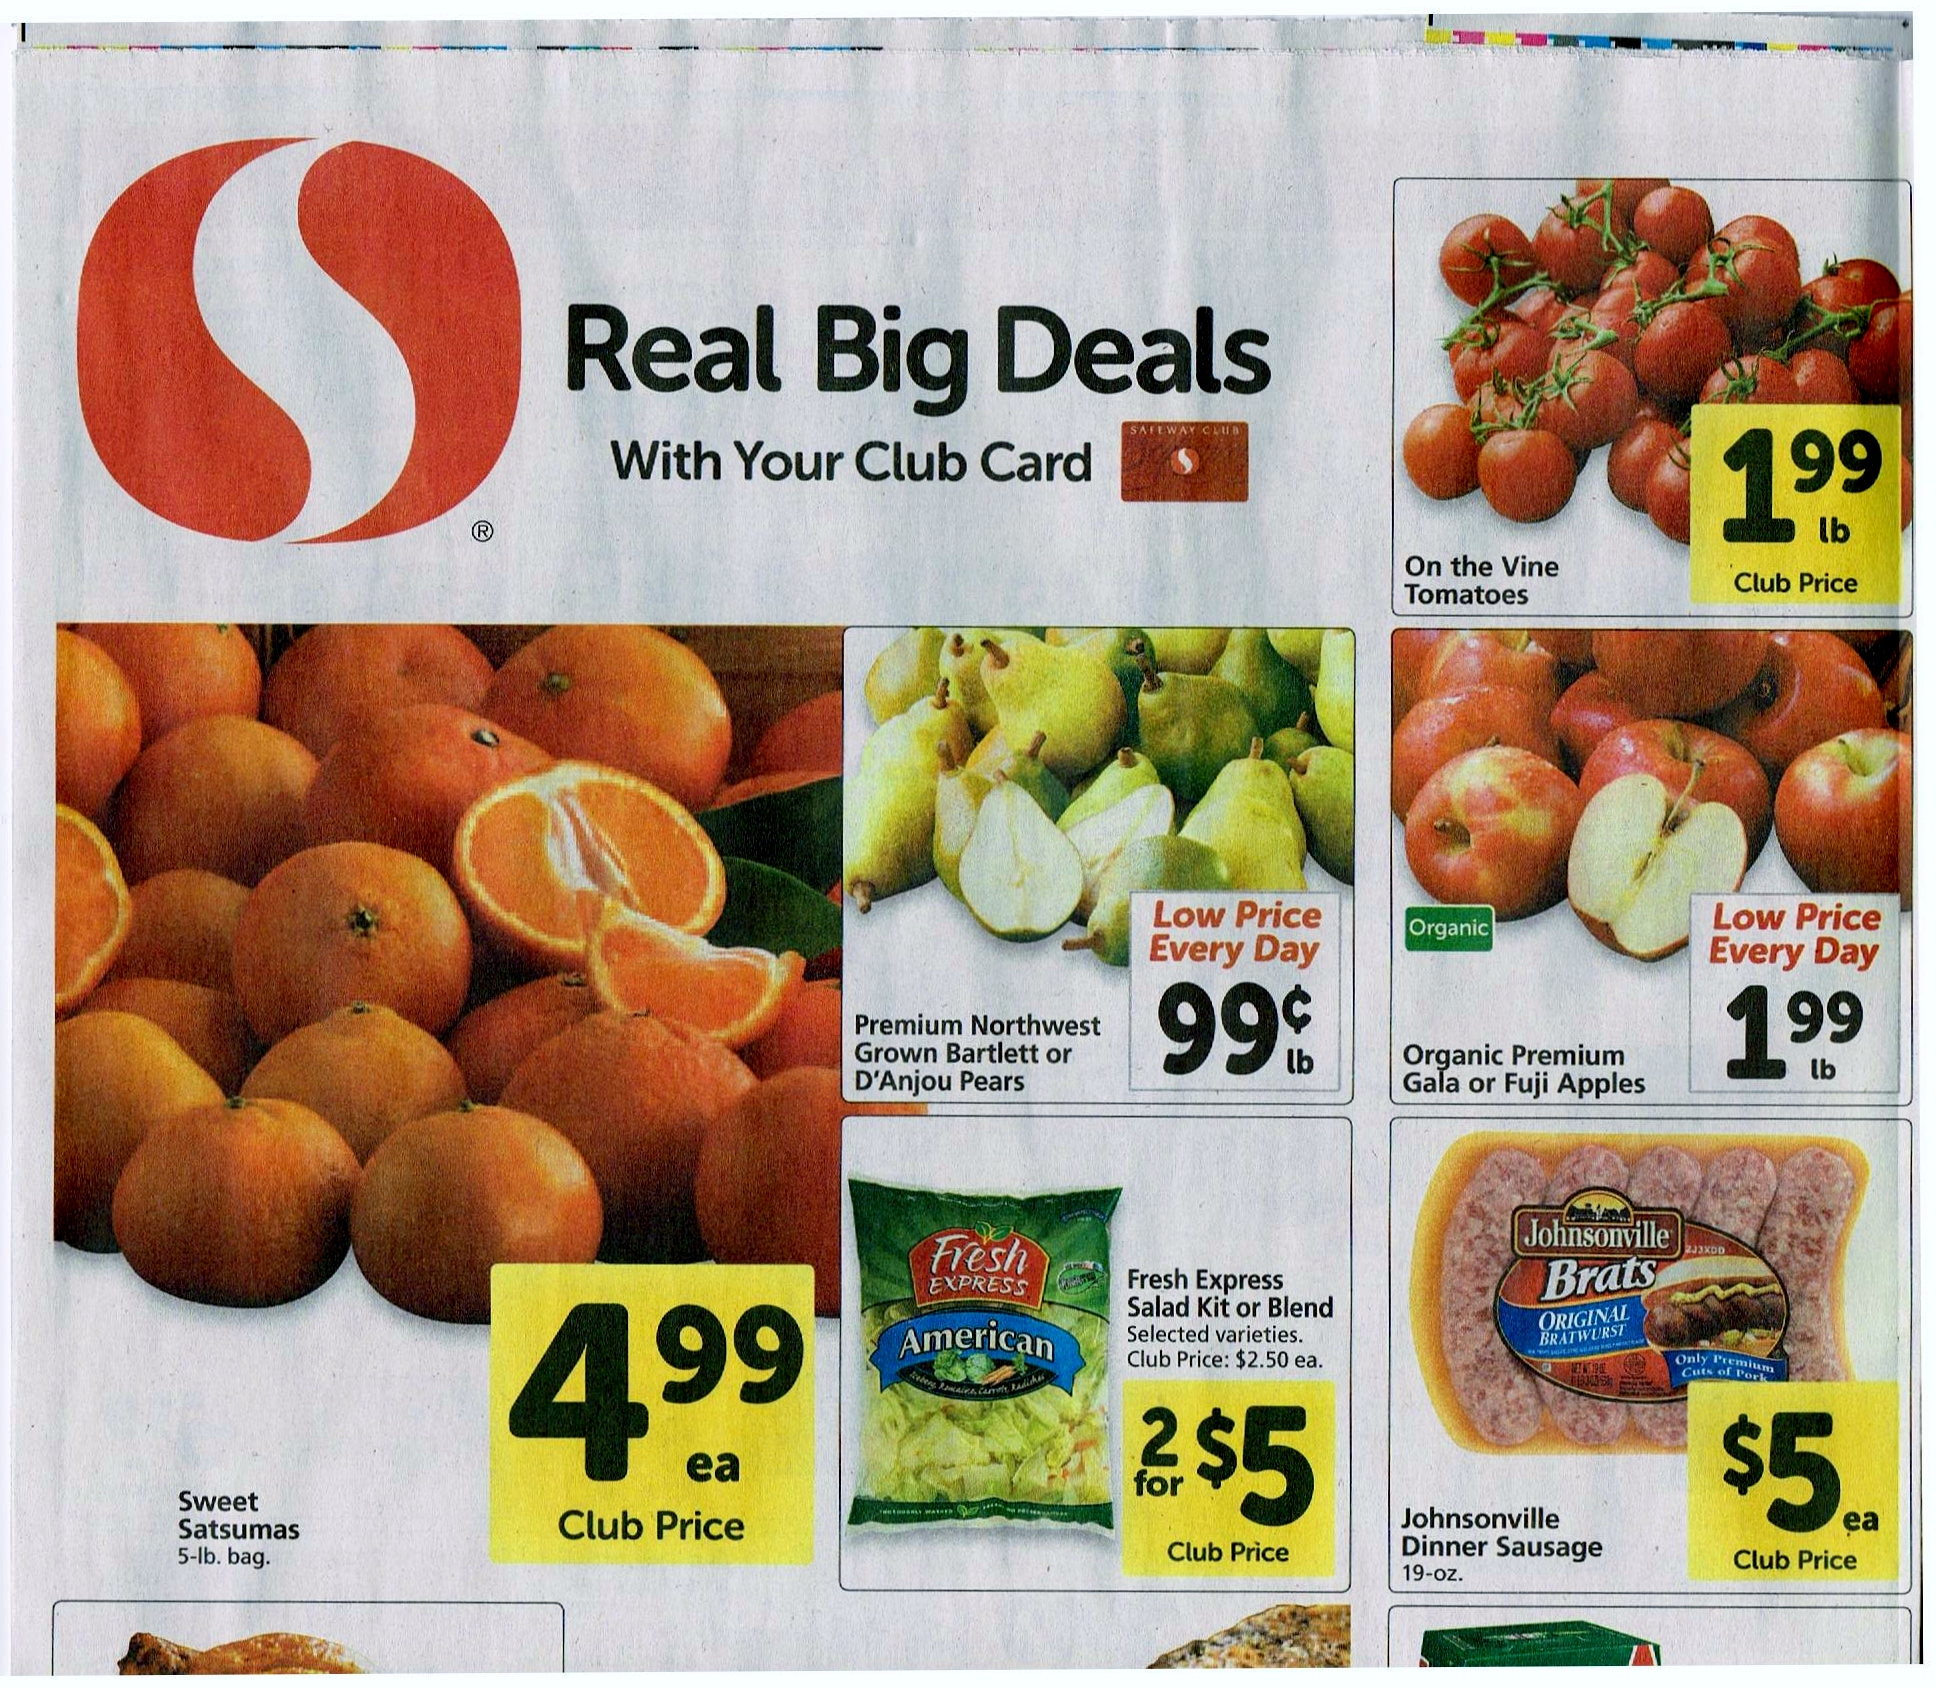 Safeway Nw Coupon Deals 10 22 10 28 Whole Chicken 99 Lb Hershey S Or Nestle Halloween Candy Downy Unstopables The Coupon Project